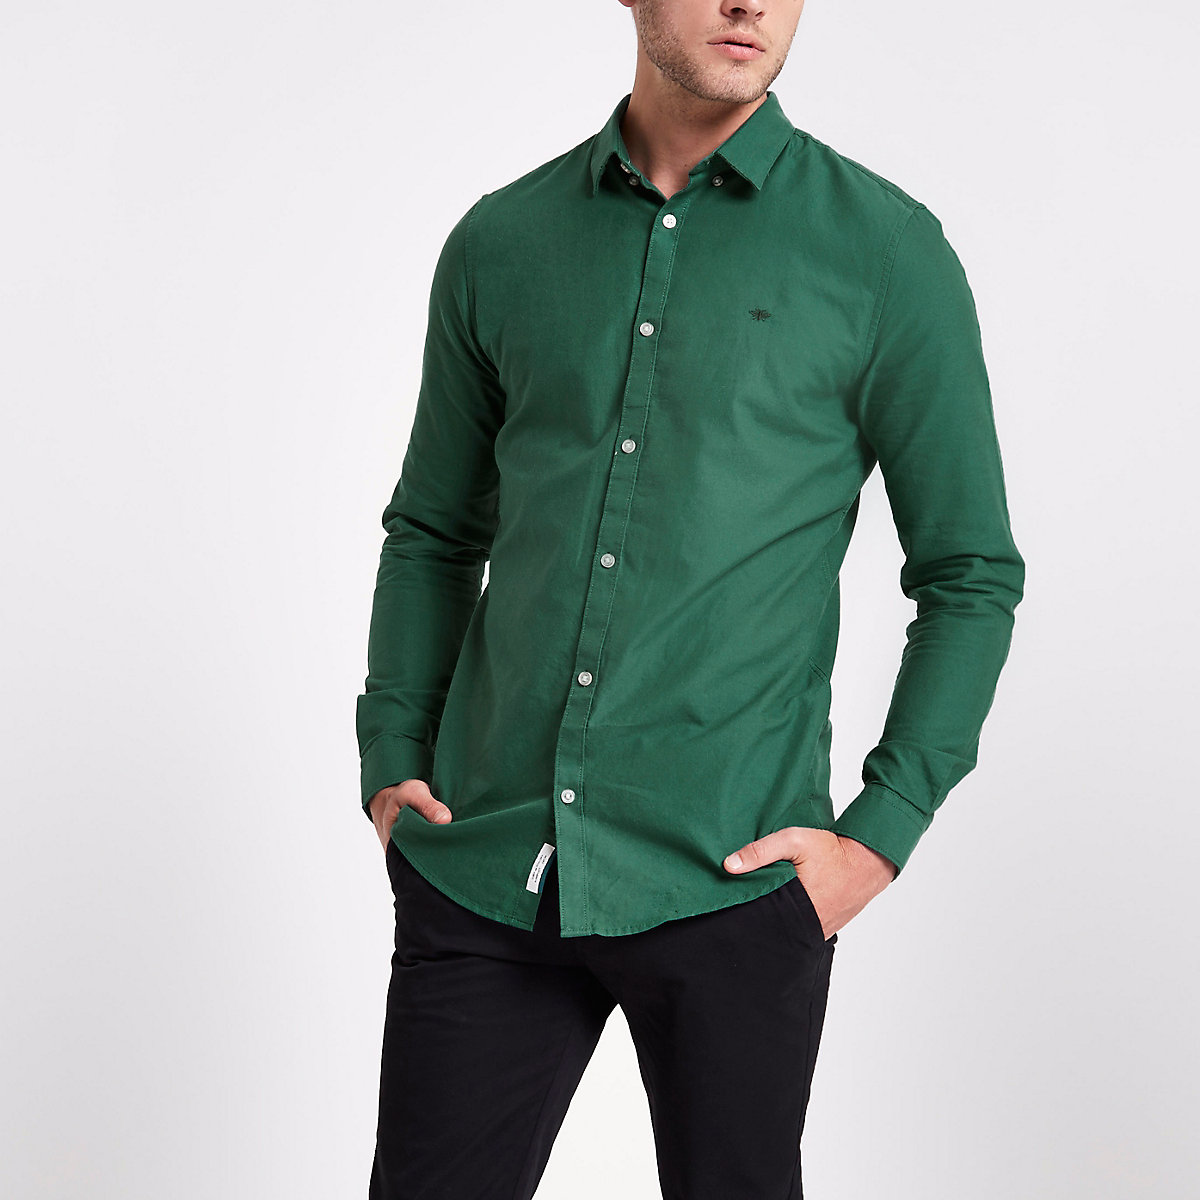 Green wasp embroidered Oxford shirt